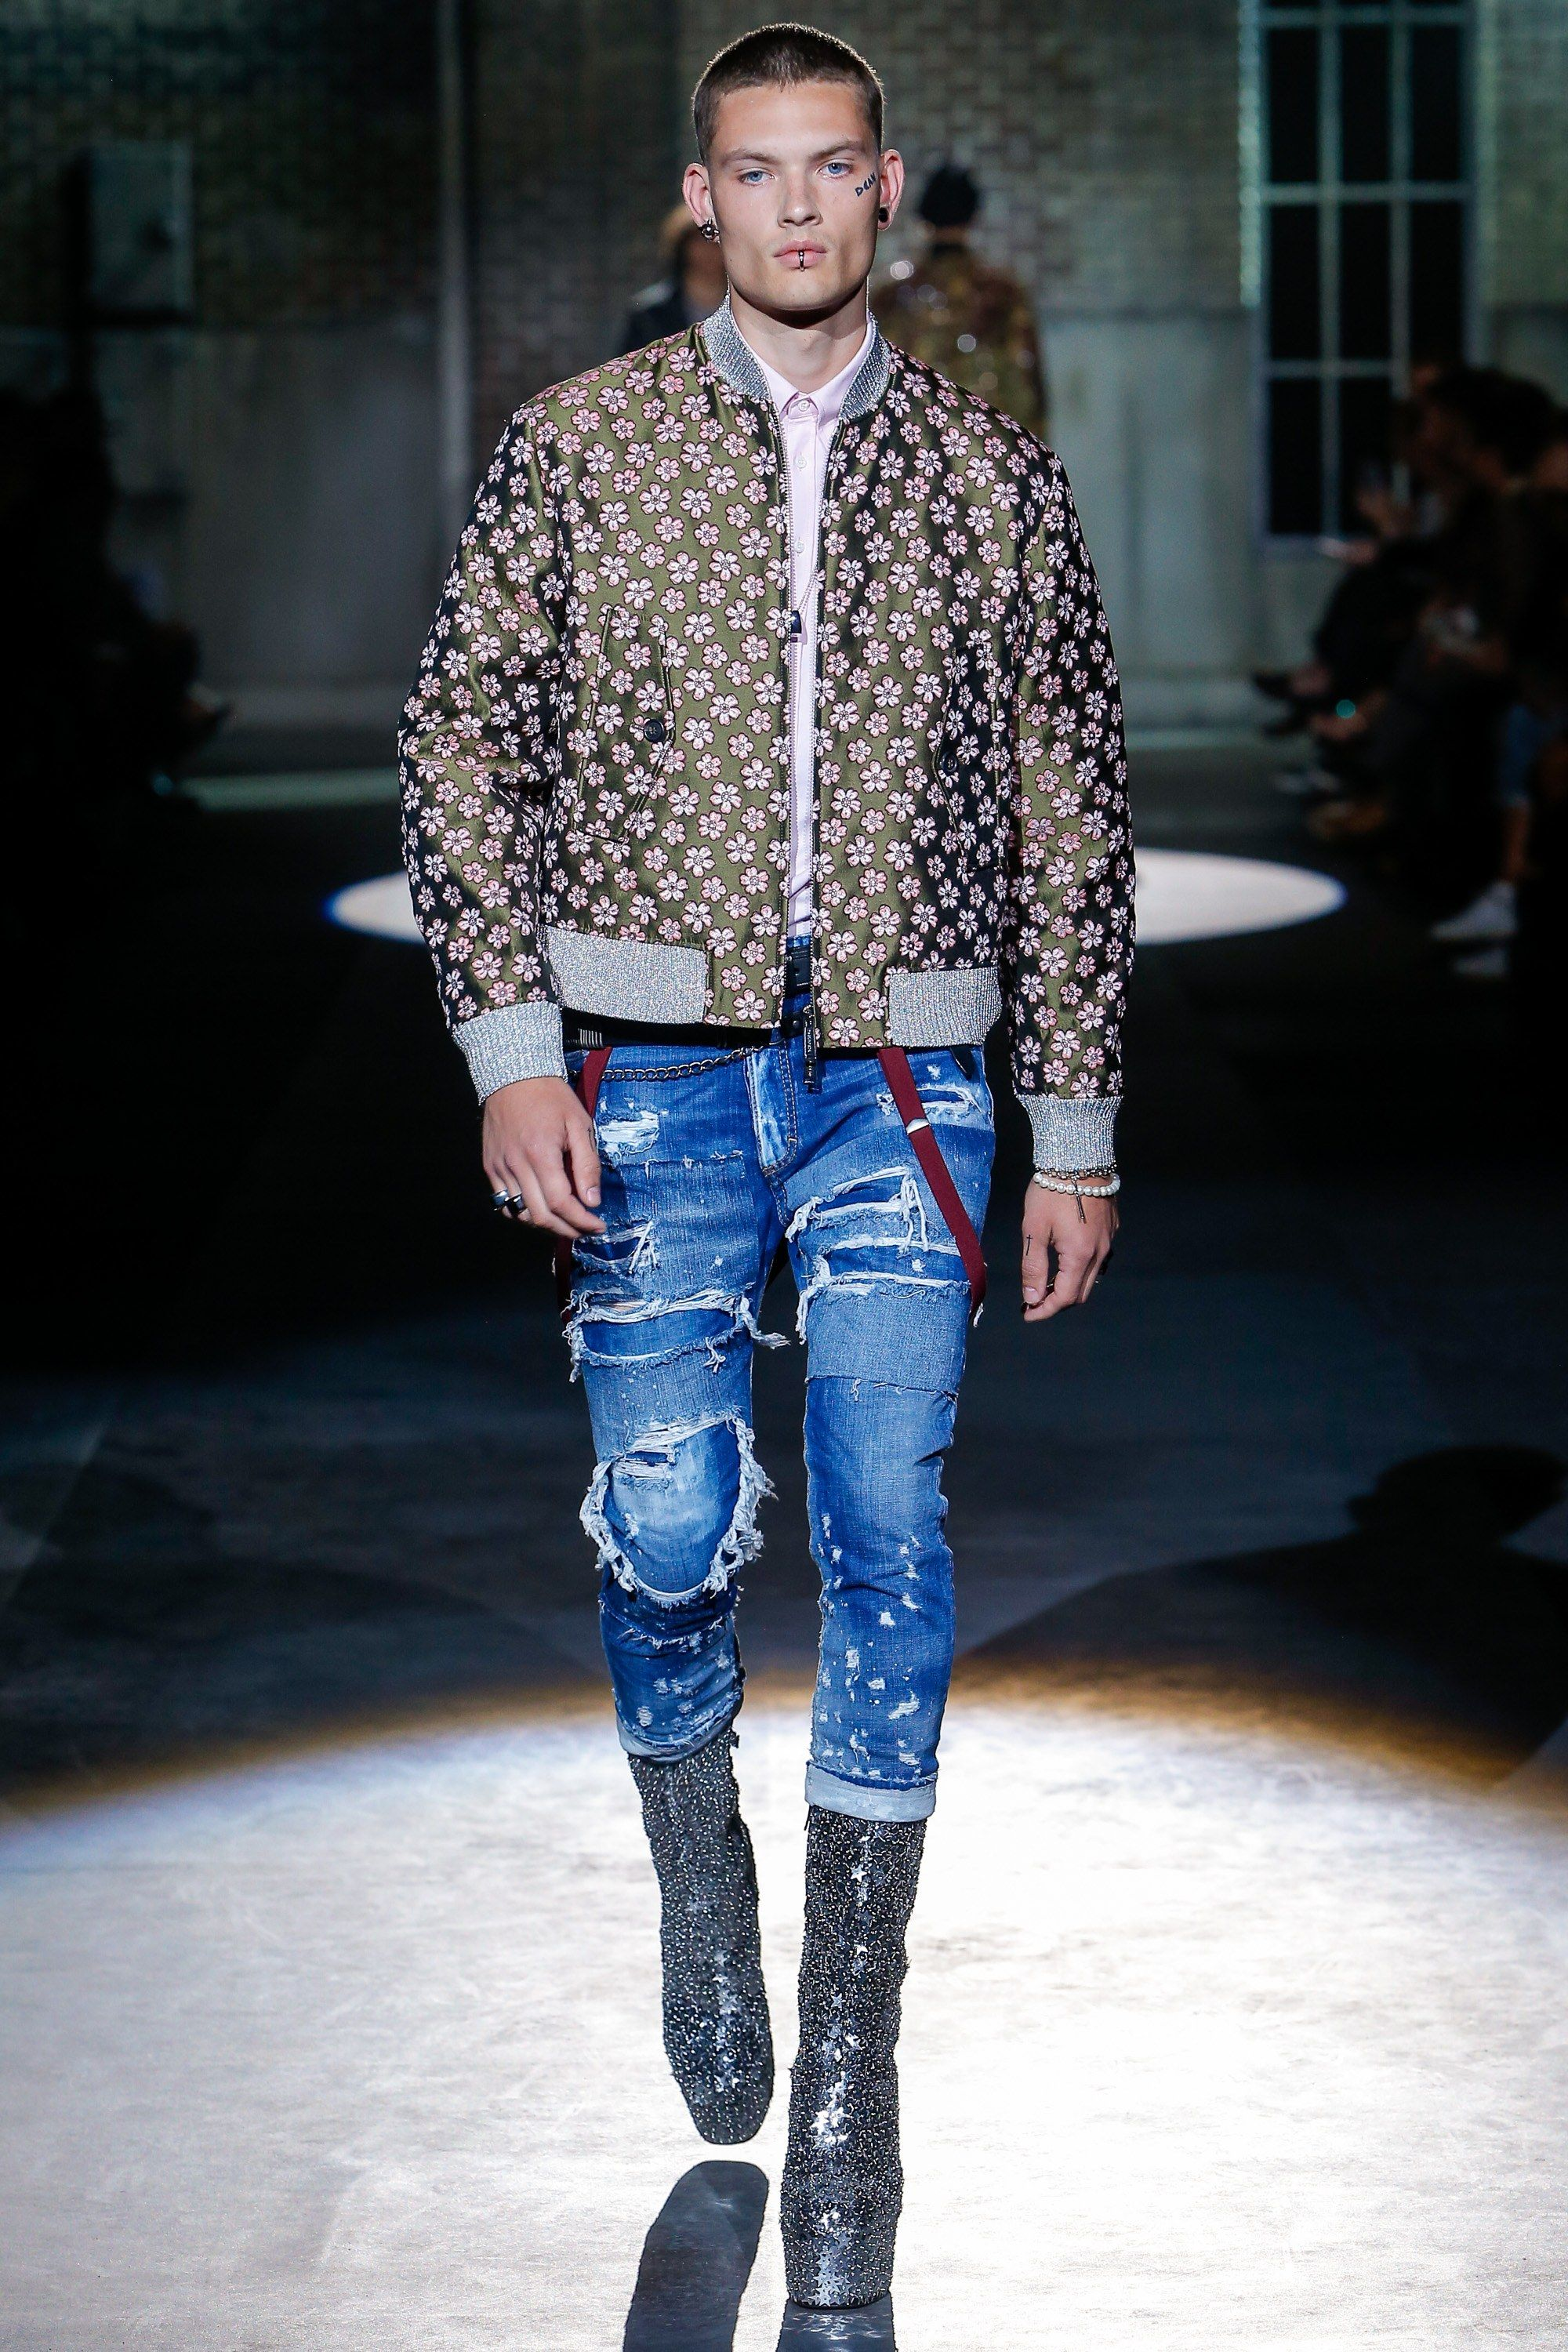 Communication on this topic: Dsquared2 SpringSummer 2019 Collection Offers '80s Strong , dsquared2-springsummer-2019-collection-offers-80s-strong/